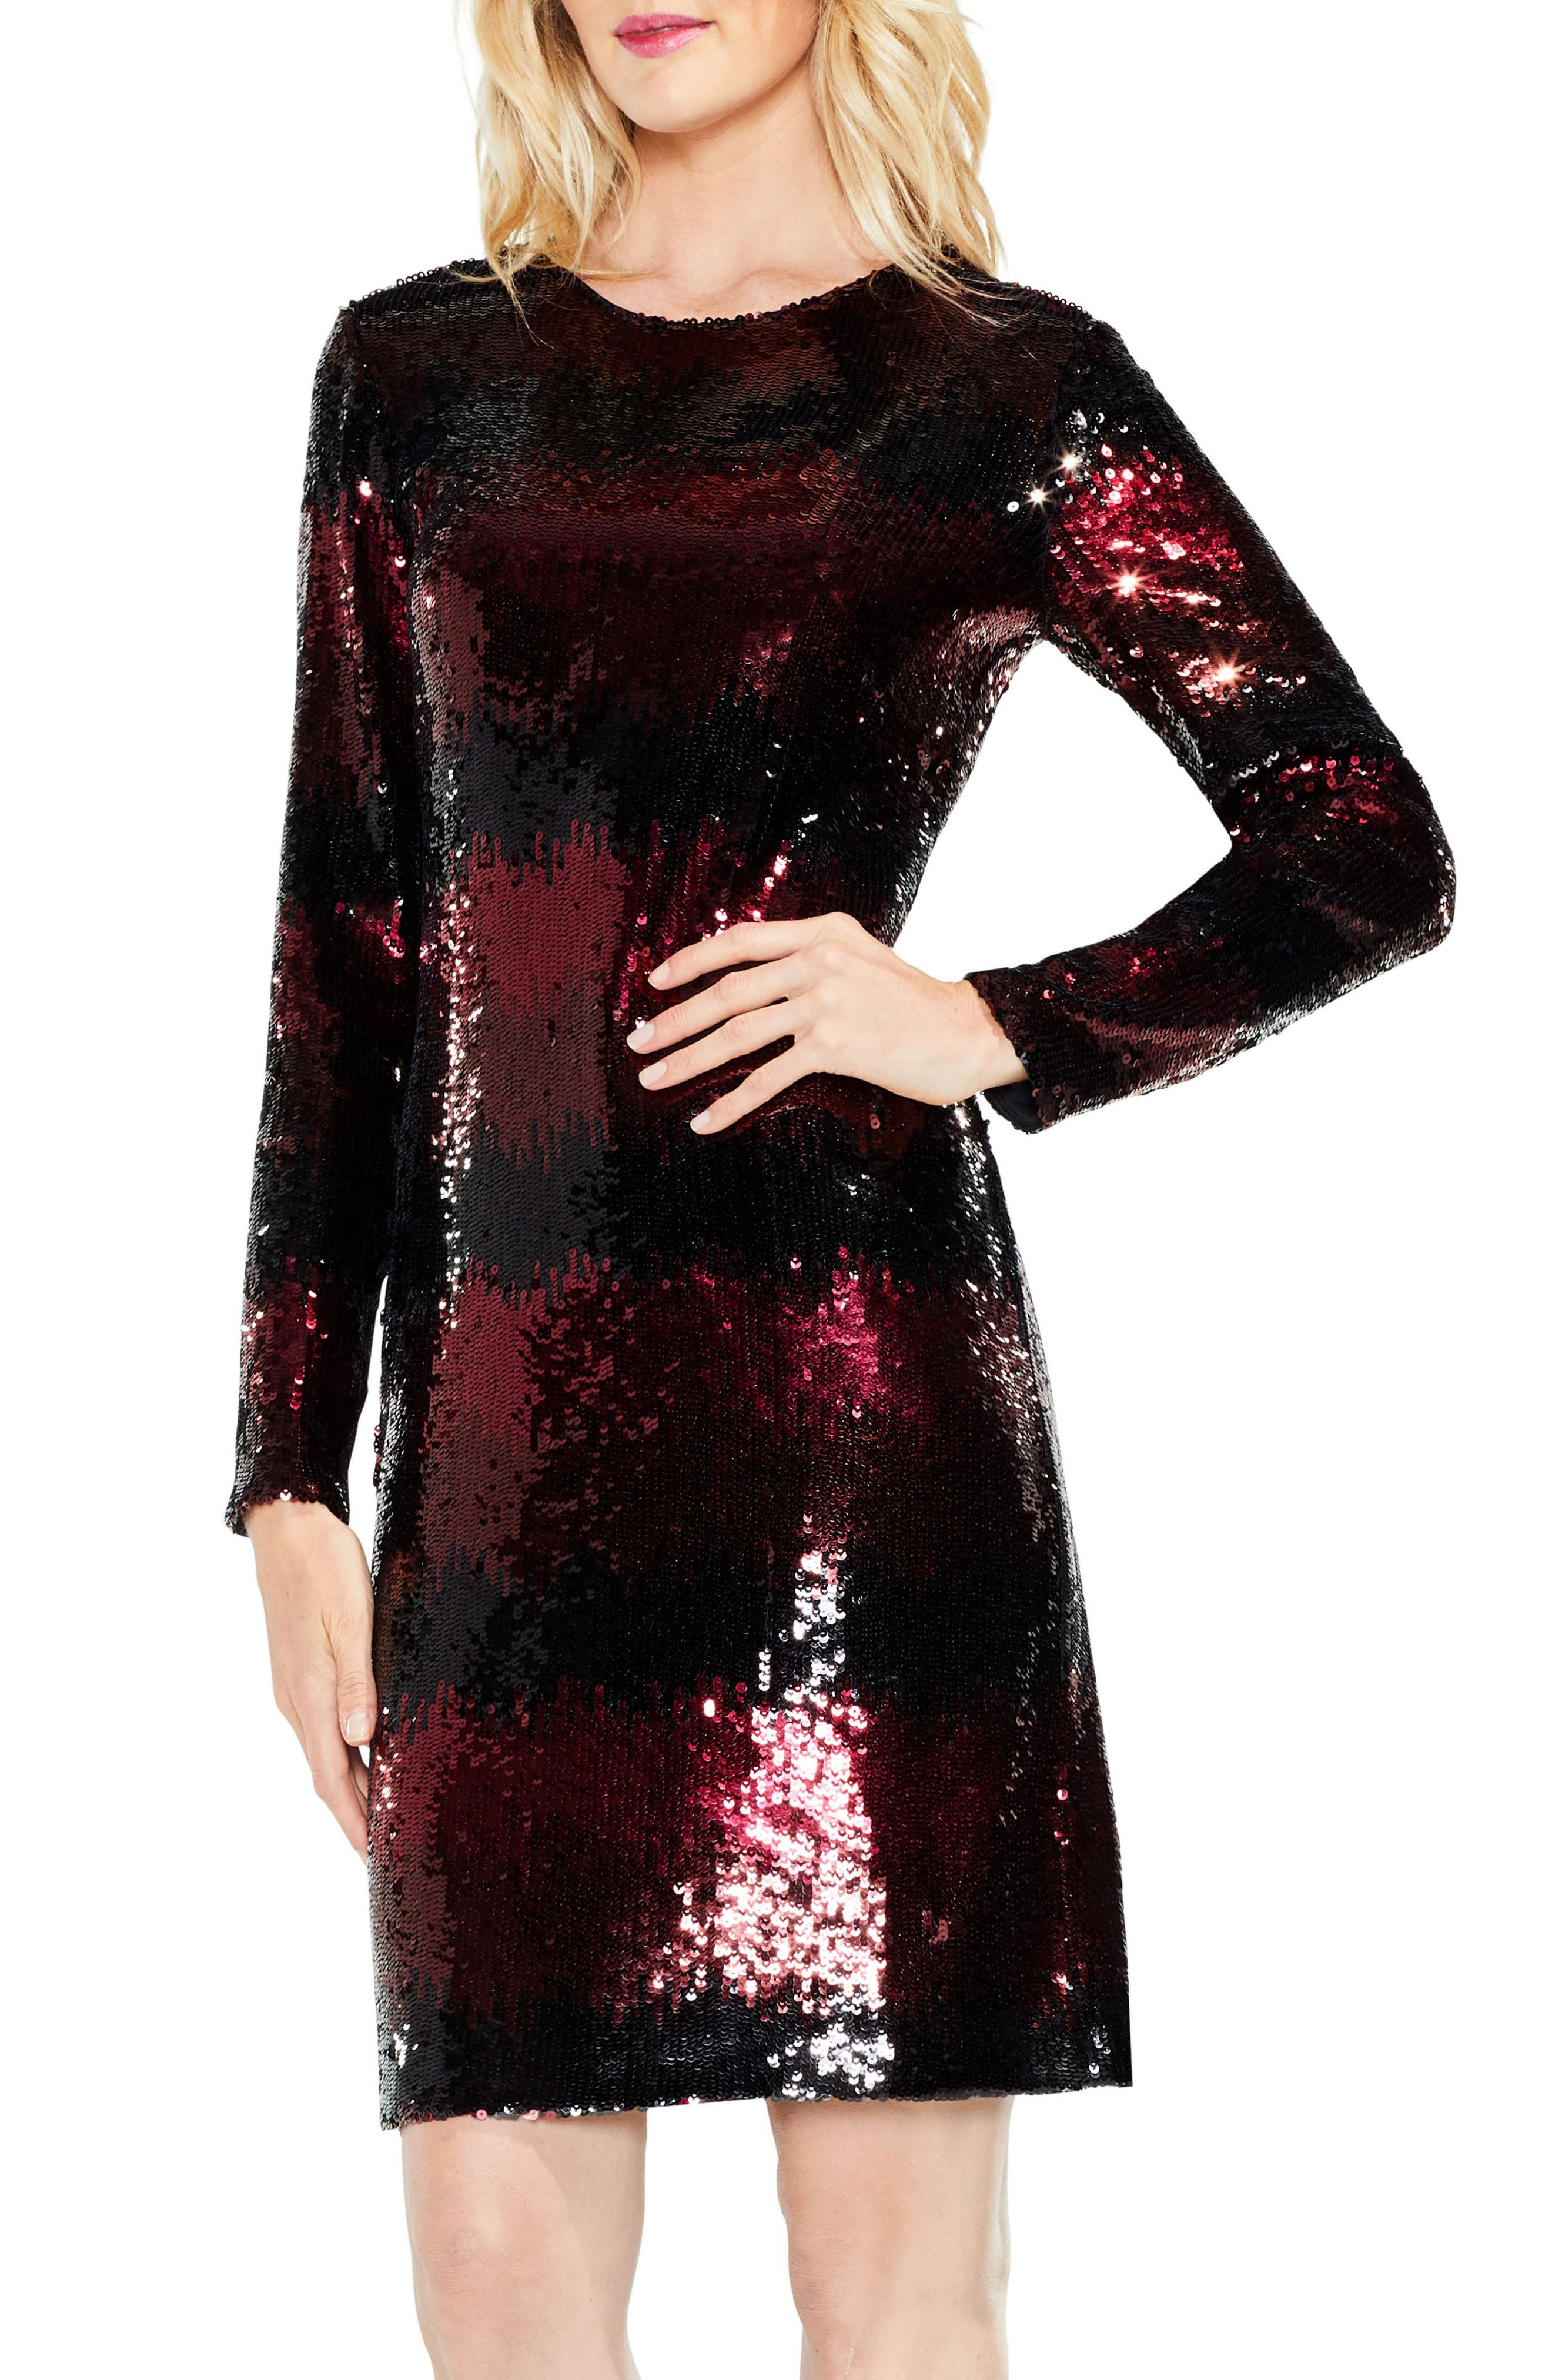 Alternate Image 1 Selected - Vince Camuto Ombré Sequin Dress